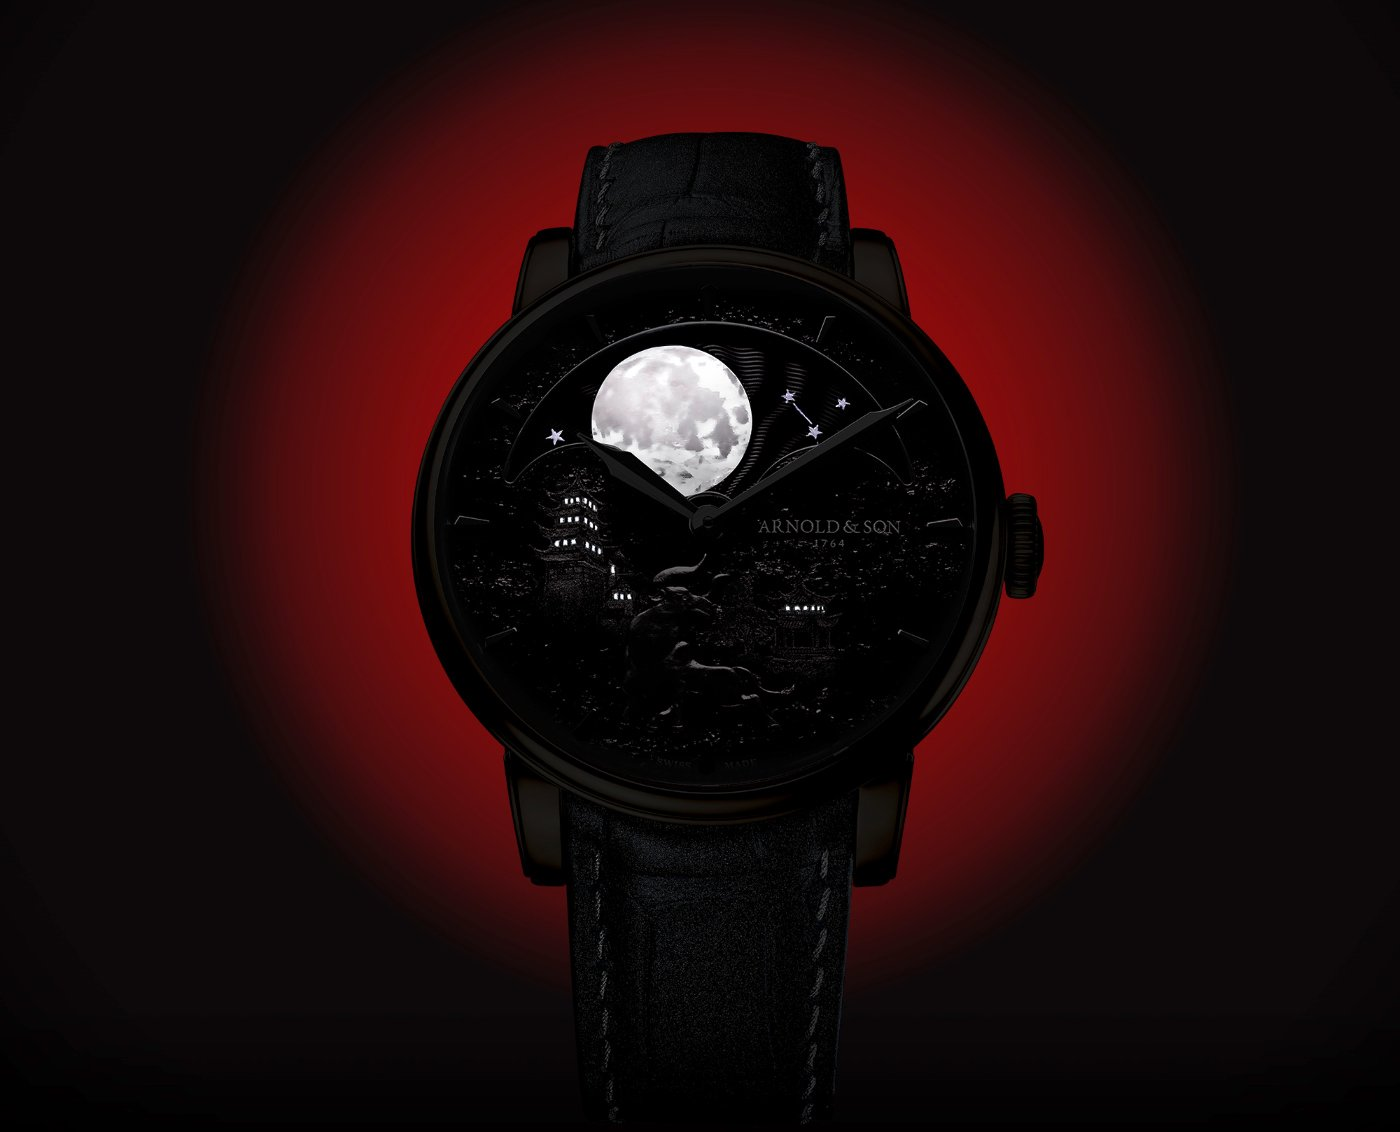 arnold_and_son_moon_ox_night_-_europa_star_watch_magazine_2021